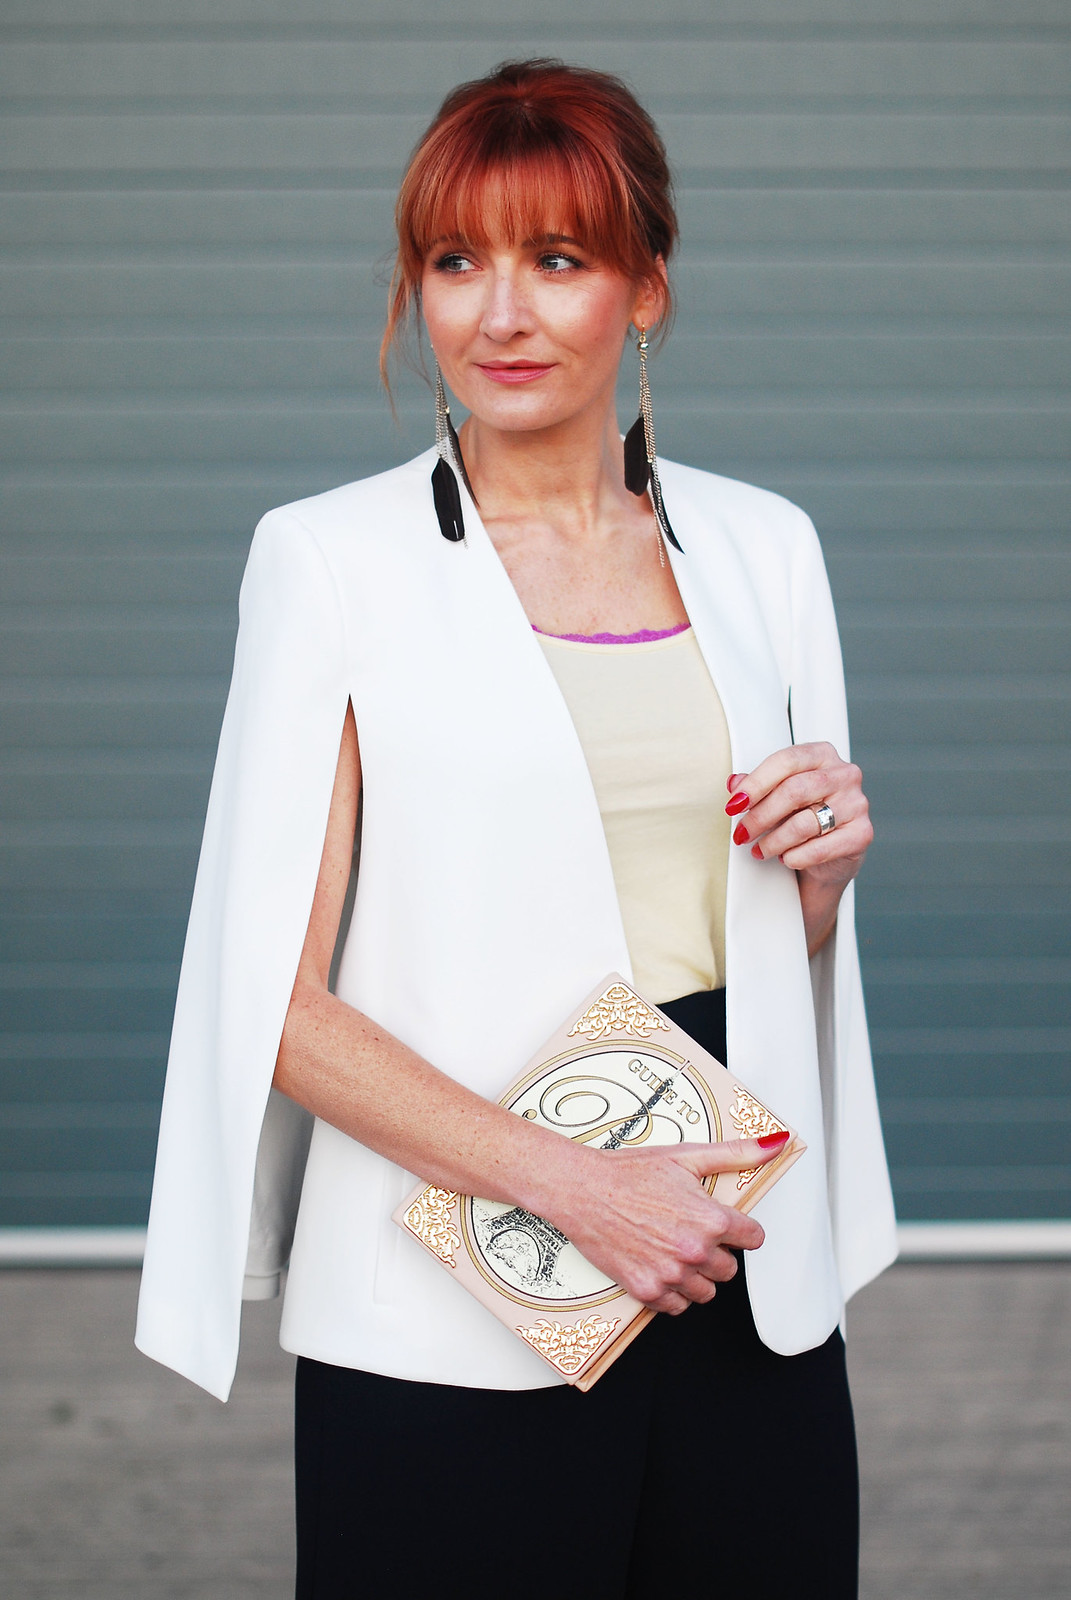 Awards ceremony outfit: White cape, navy culottes, Paris book clutch | Not Dressed As Lamb, over 40 style